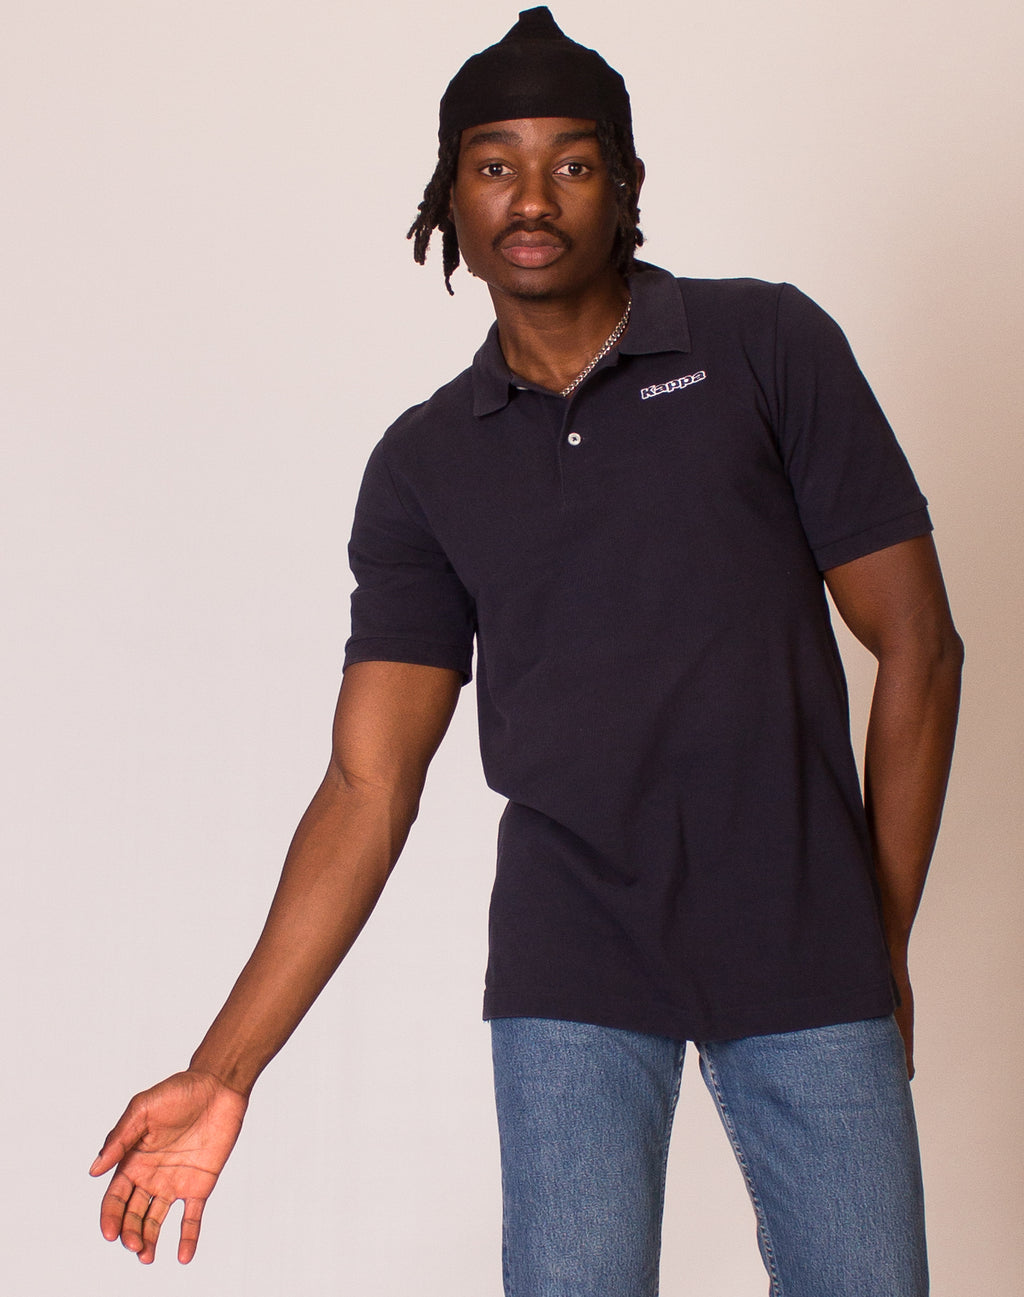 KAPPA NAVY POLO SHIRT